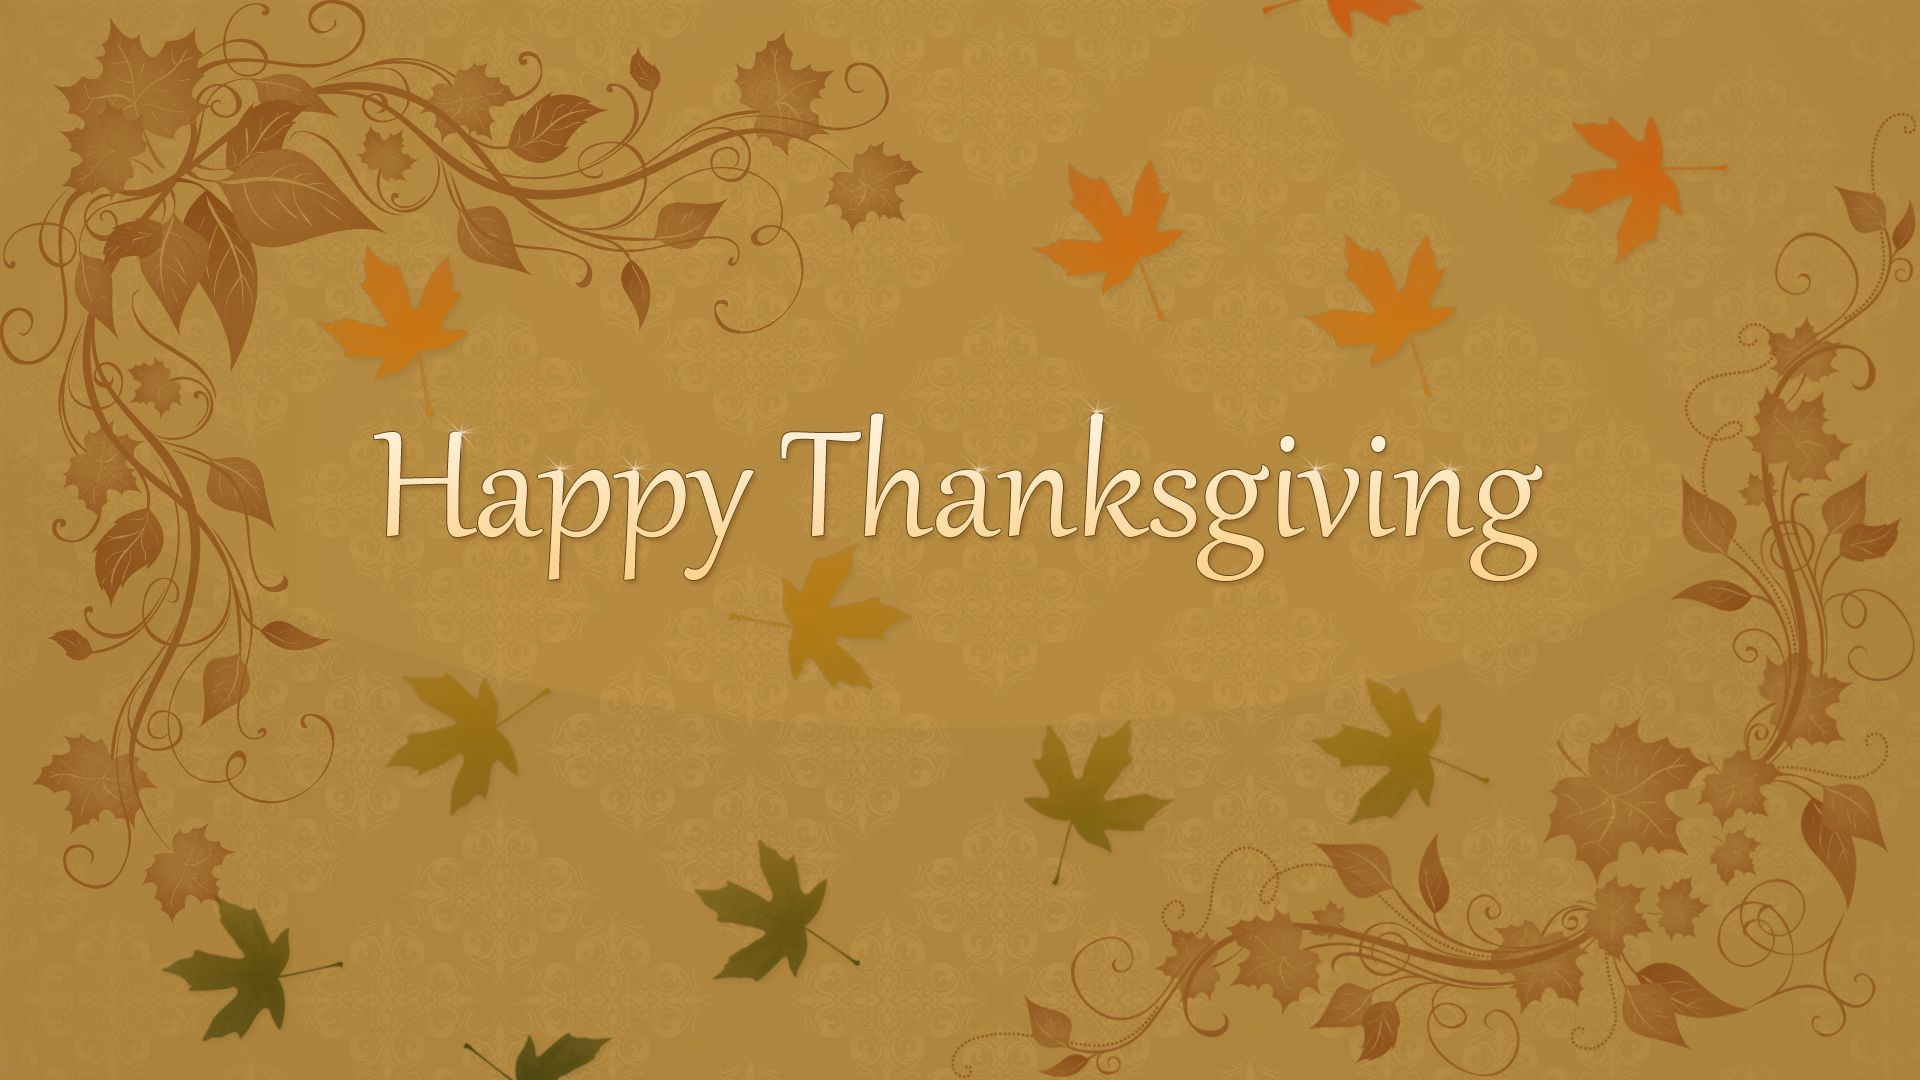 Beautiful Thanksgiving Wallpapers 2020